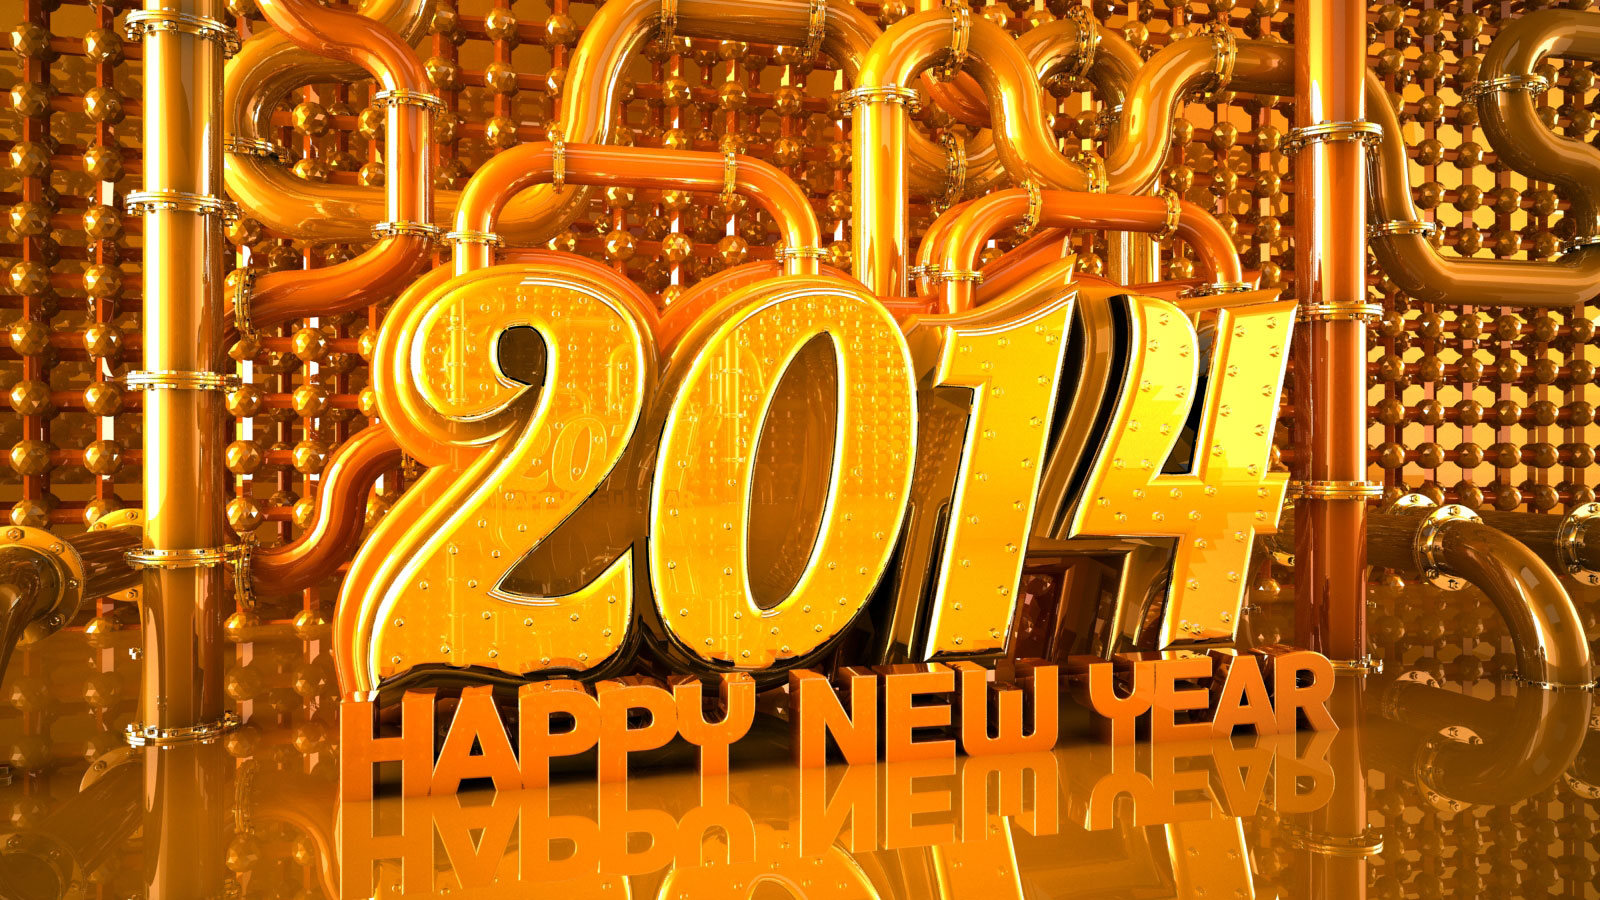 Happy New Year 2014 Wallpaper Images  Facebook Cover photos